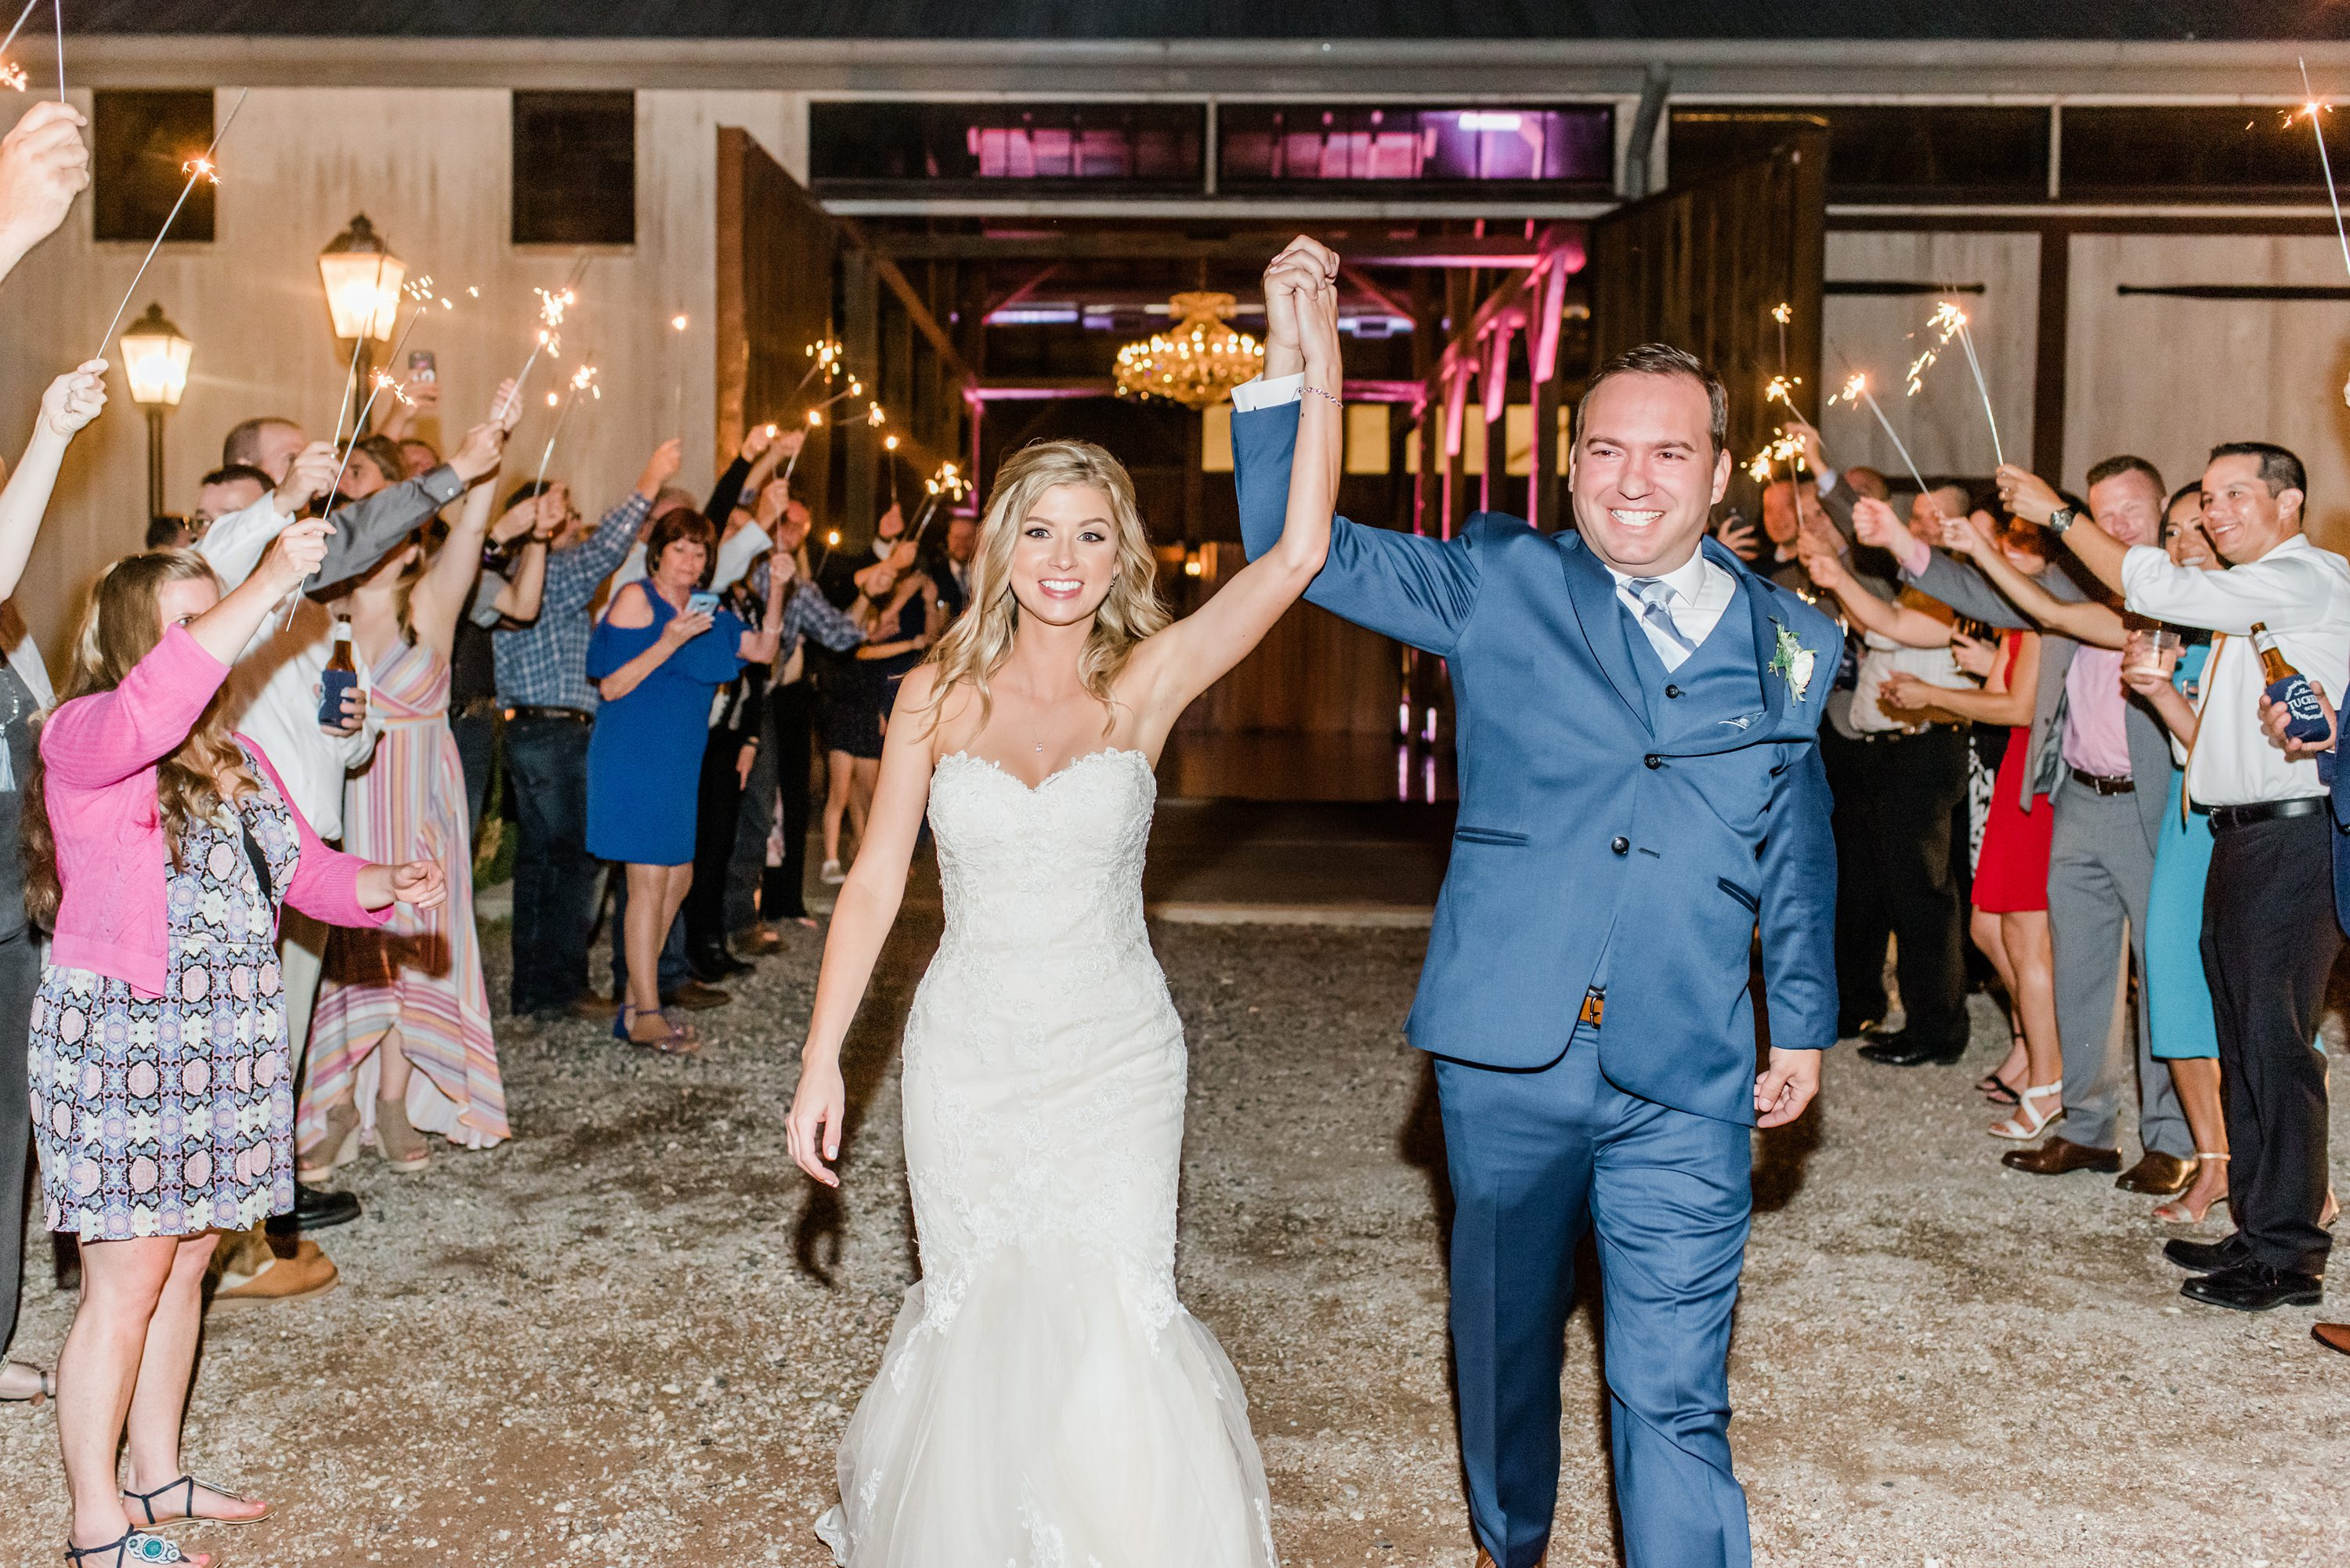 Laura and Travis got married at the gorgeous Beckendorff Farms, especially when Travis cried seeing his bride for the first time. Their reception decor was absolutely stunning